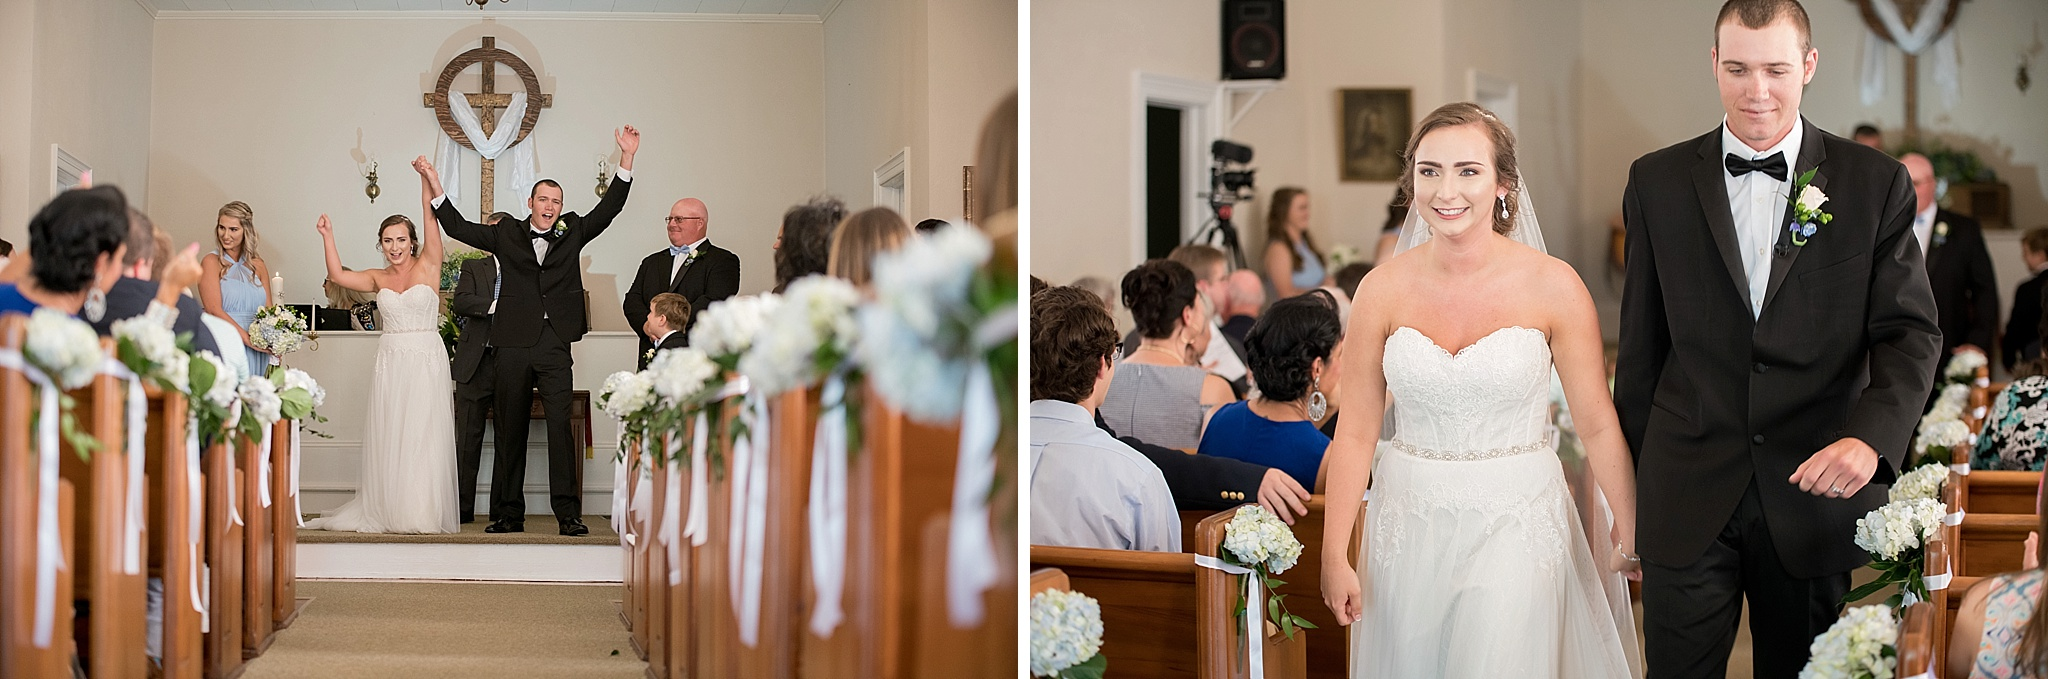 400-Saint-Andrews-Wedding-NC-Photographer-143.jpg